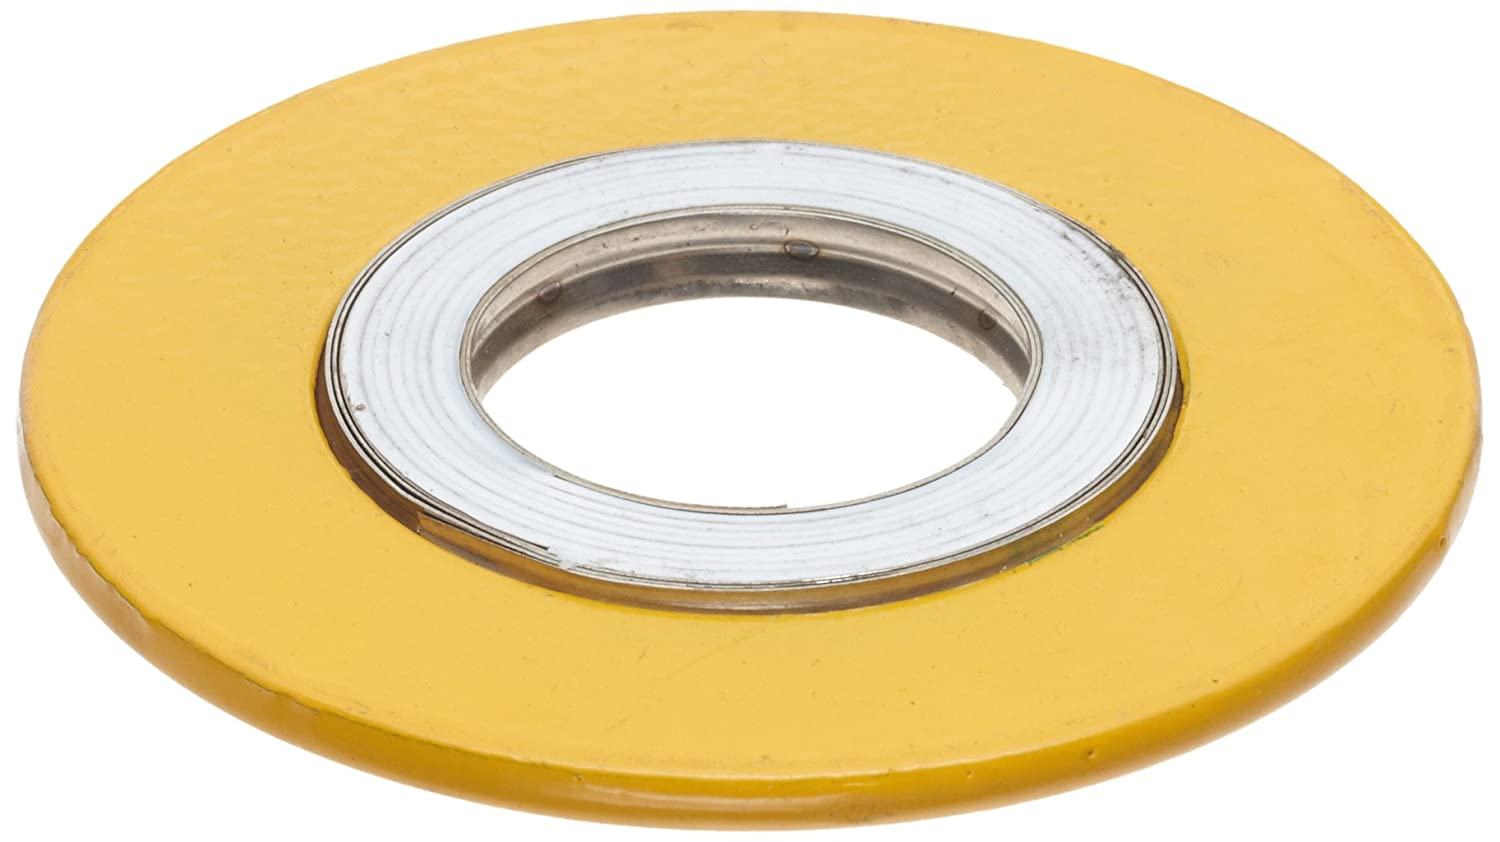 3//4 Pipe Size Metal Reinforced PTFE Flange Gasket Fits Class 300 Flange 1 ID Ring Pack of 1 3//4 Pipe Size 1 ID 2-5//8 OD Small Parts 2-5//8 OD Pack of 1